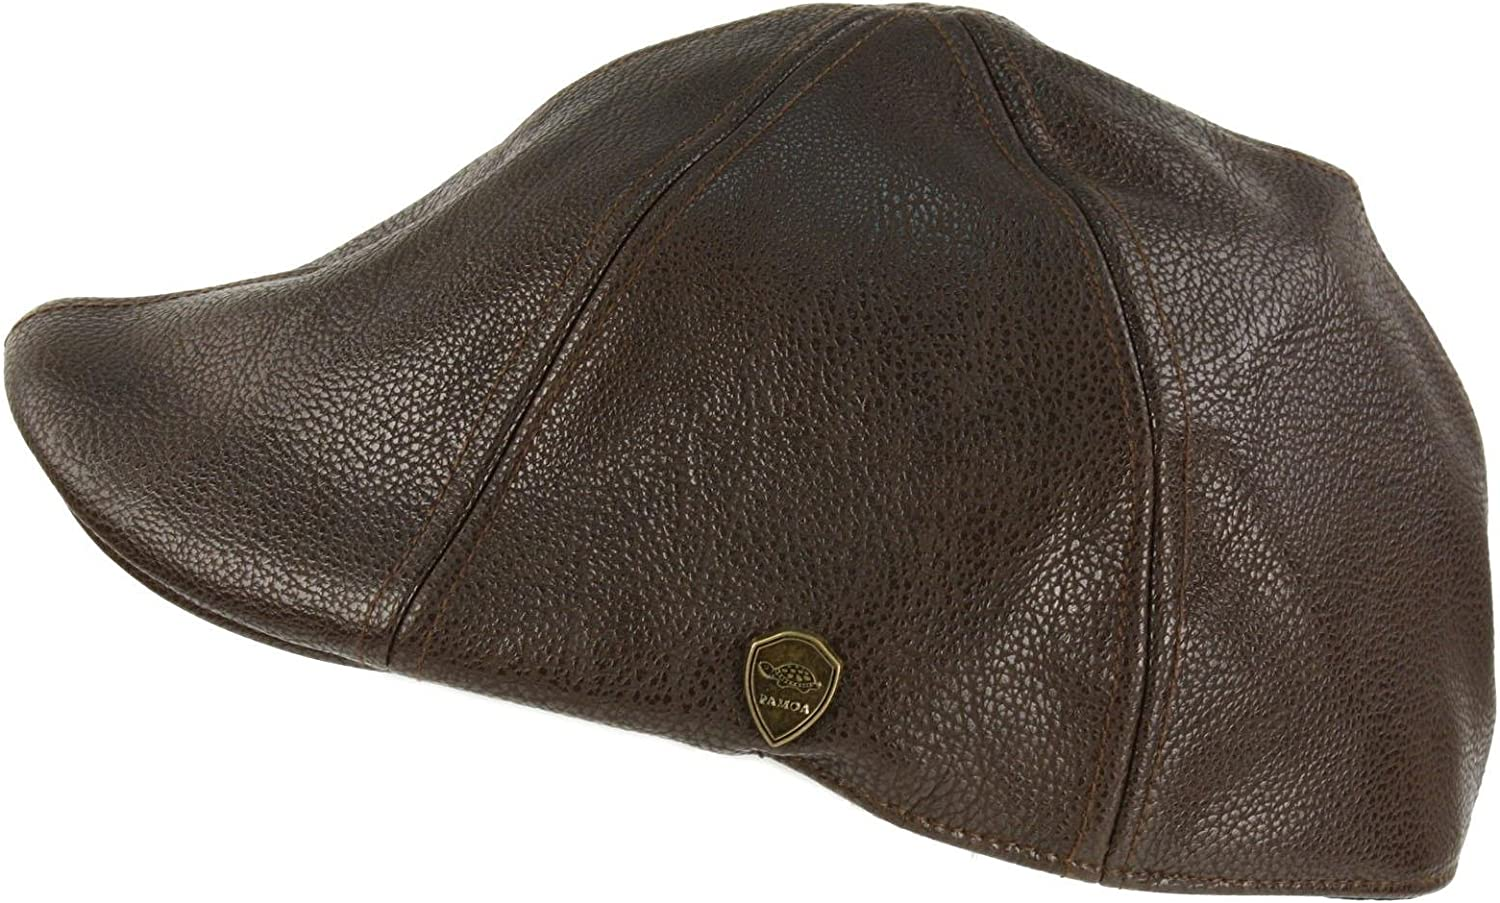 Mens Winter Fall Faux Leather Duckbill Ivy Driver Cabbie Cap Hat